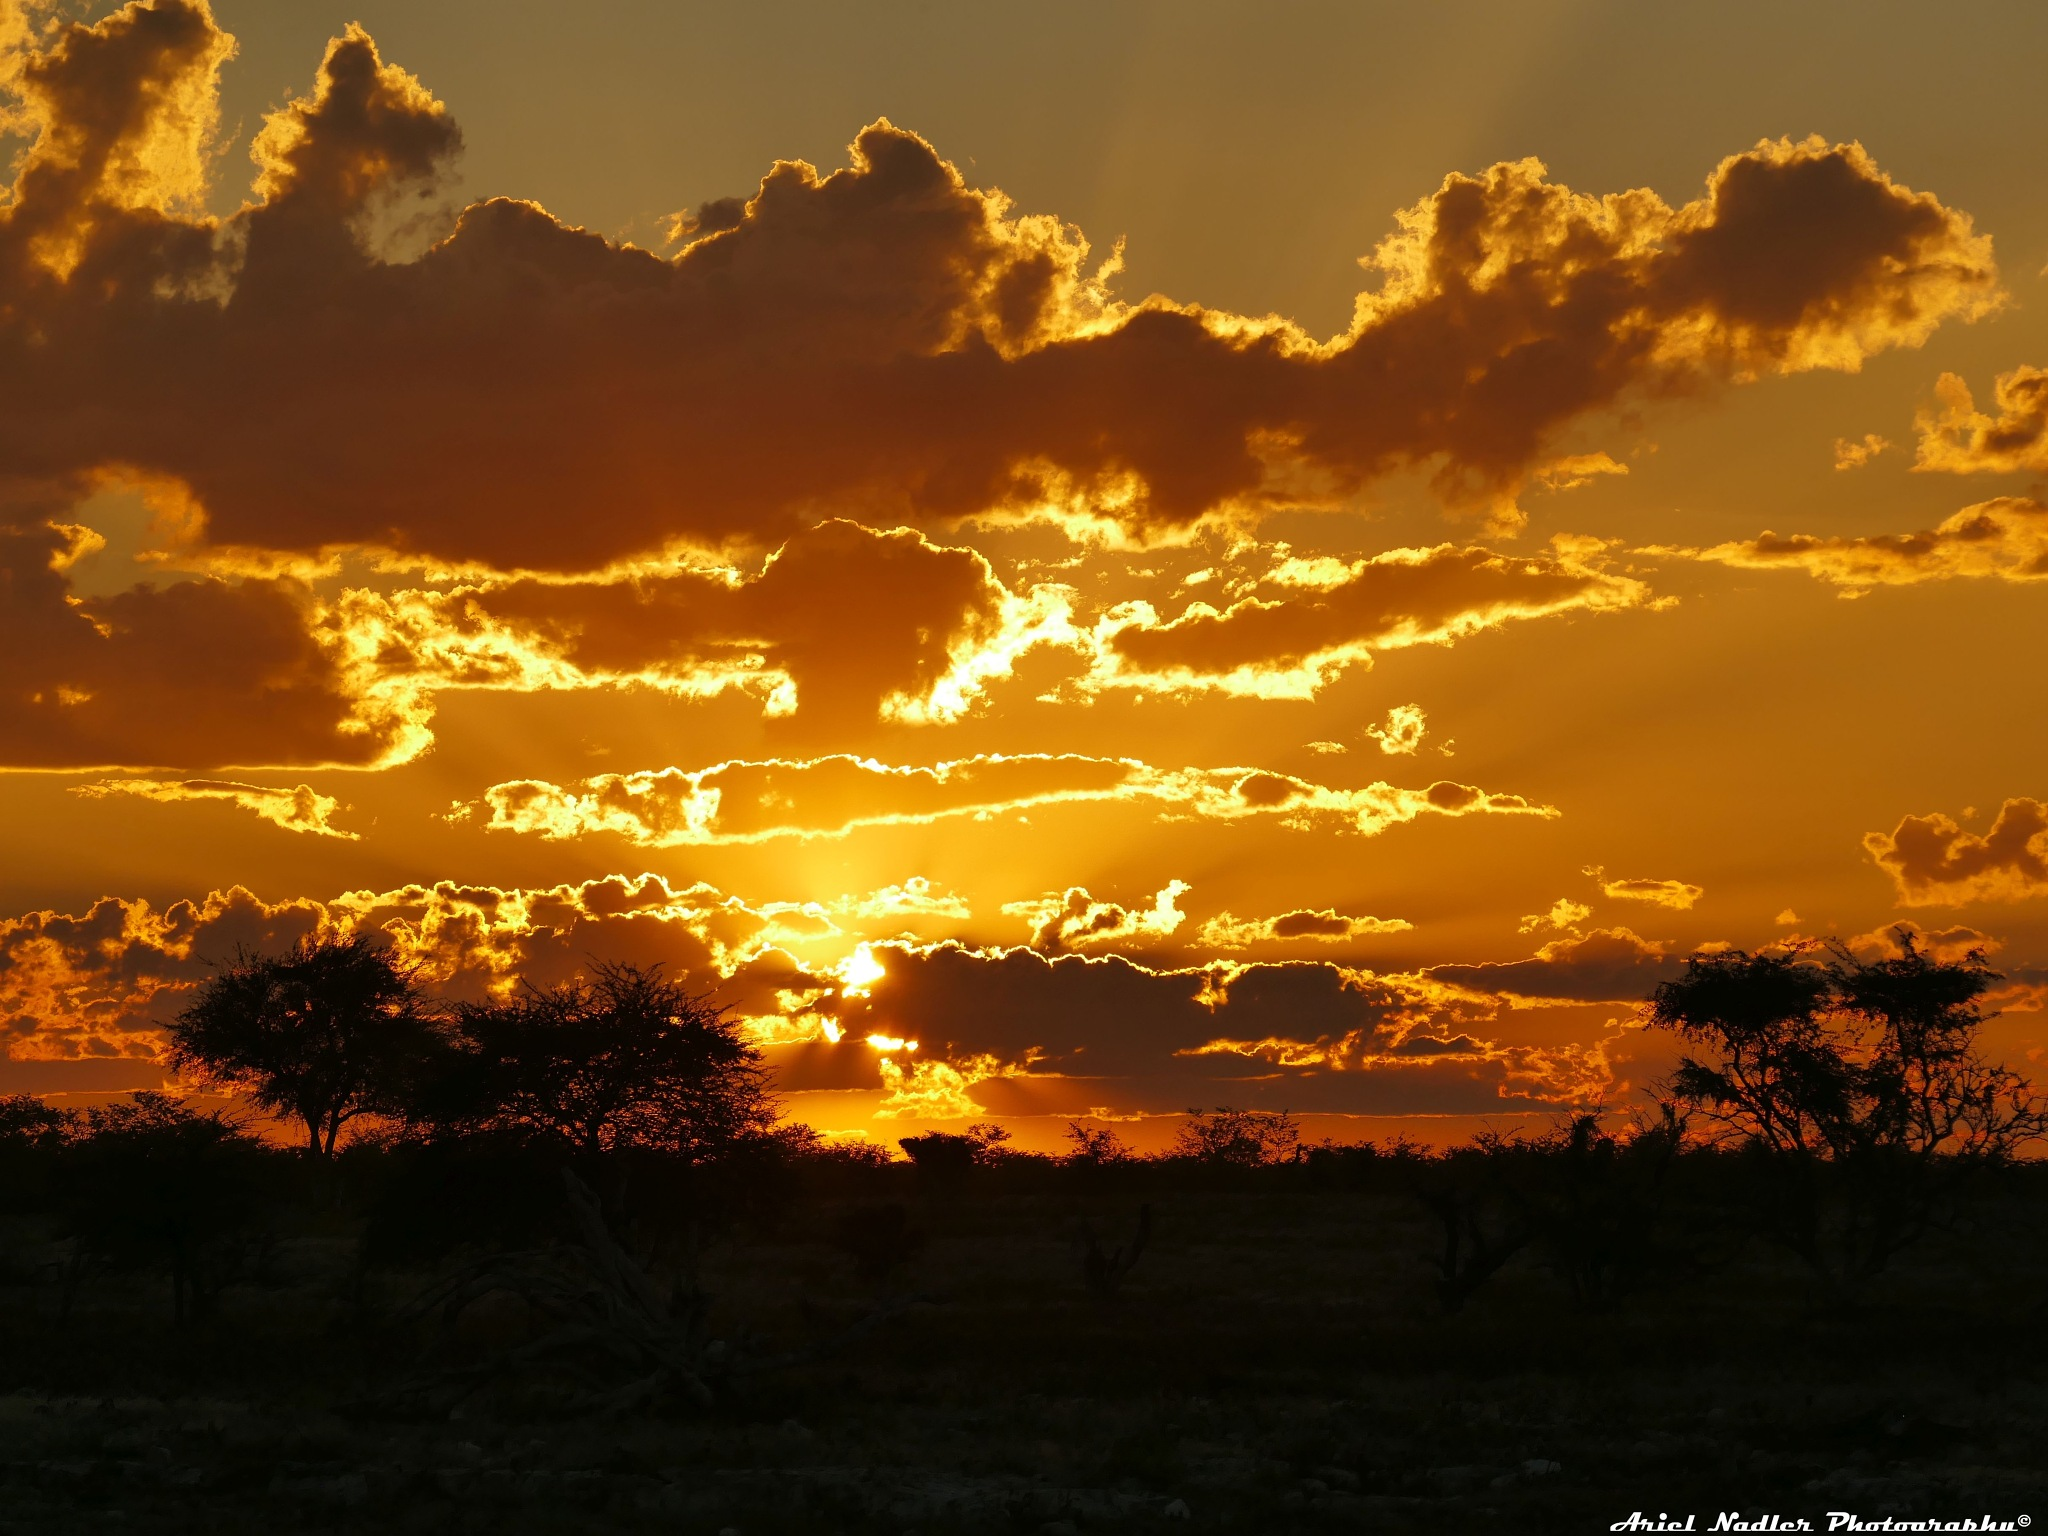 VIEWS FROM NAMIBIA-AFRICA by Ariel Nadler